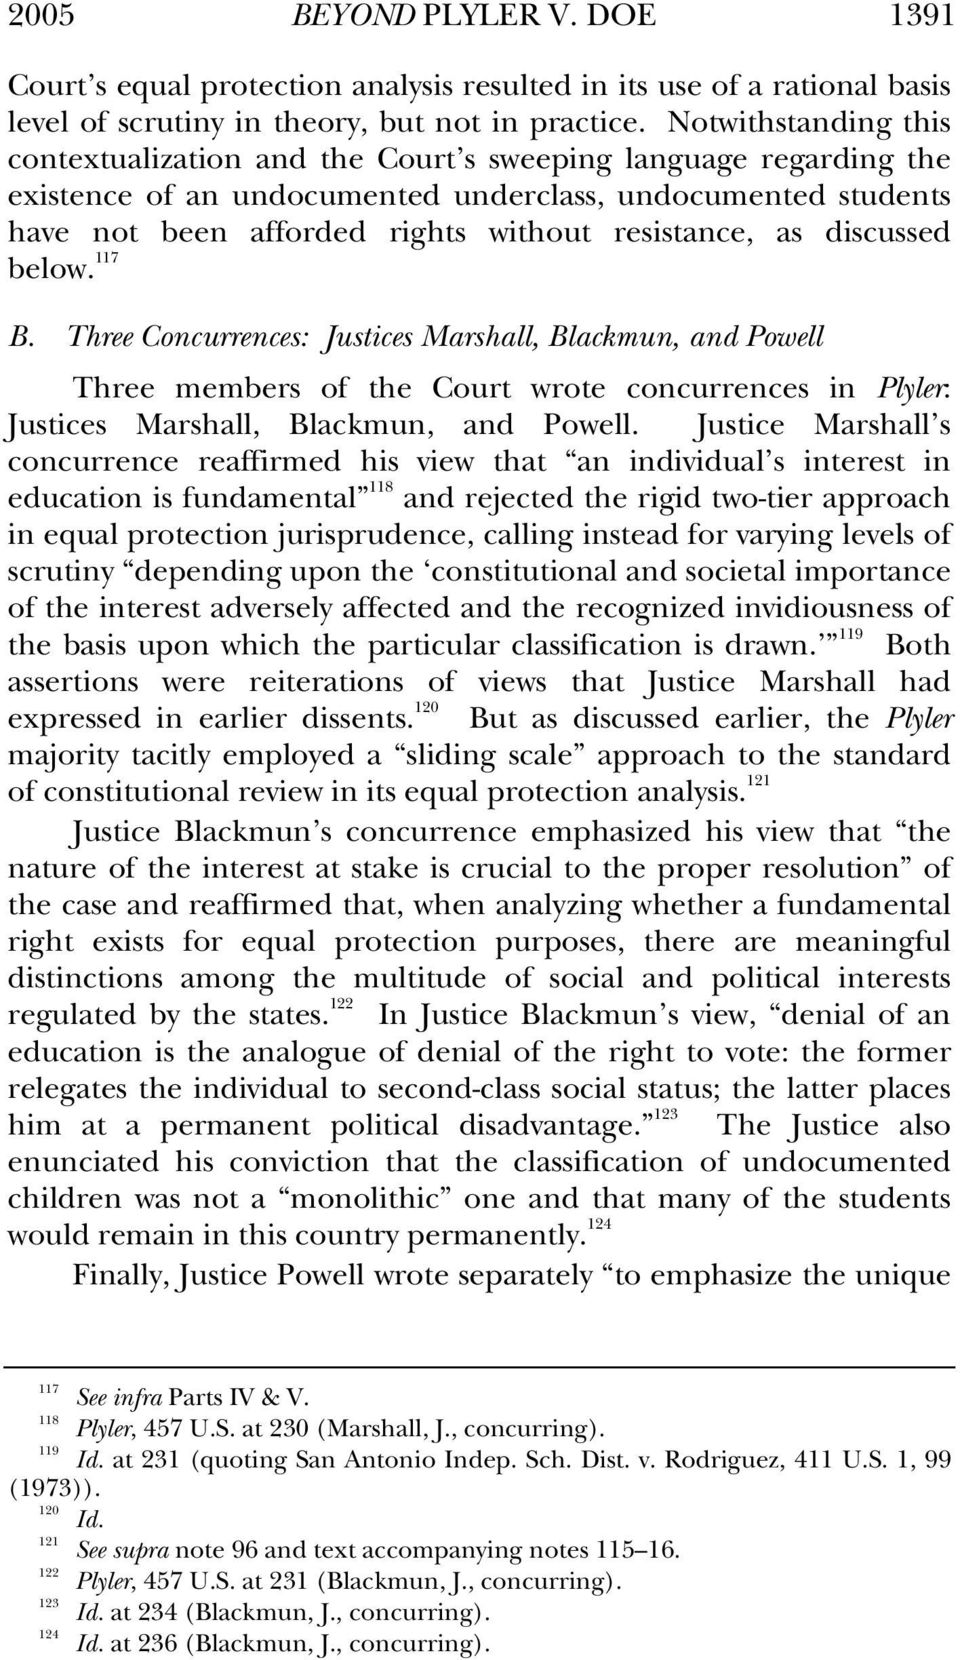 as discussed below. 117 B. Three Concurrences: Justices Marshall, Blackmun, and Powell Three members of the Court wrote concurrences in Plyler: Justices Marshall, Blackmun, and Powell.